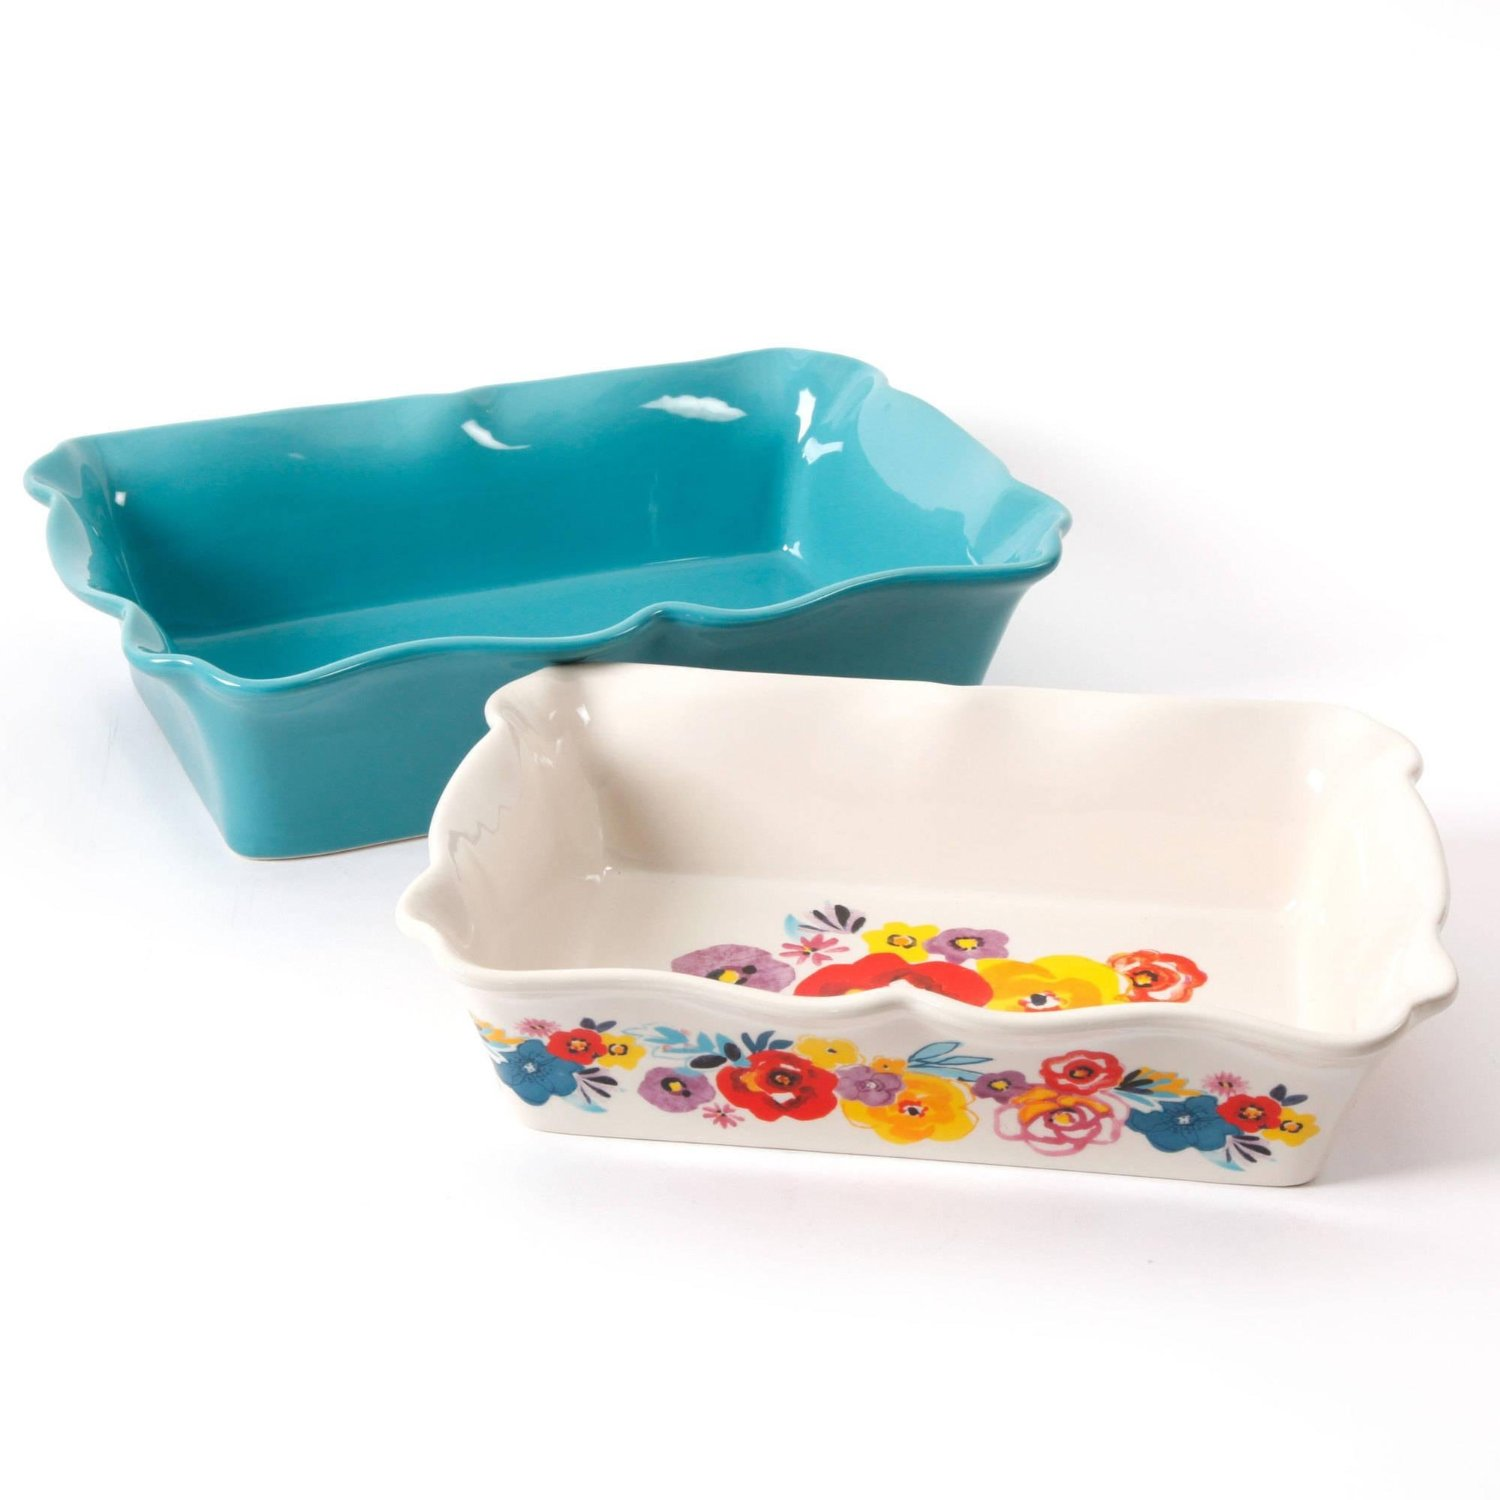 10 Beautiful Casserole Pans To Feast Your Eyes On